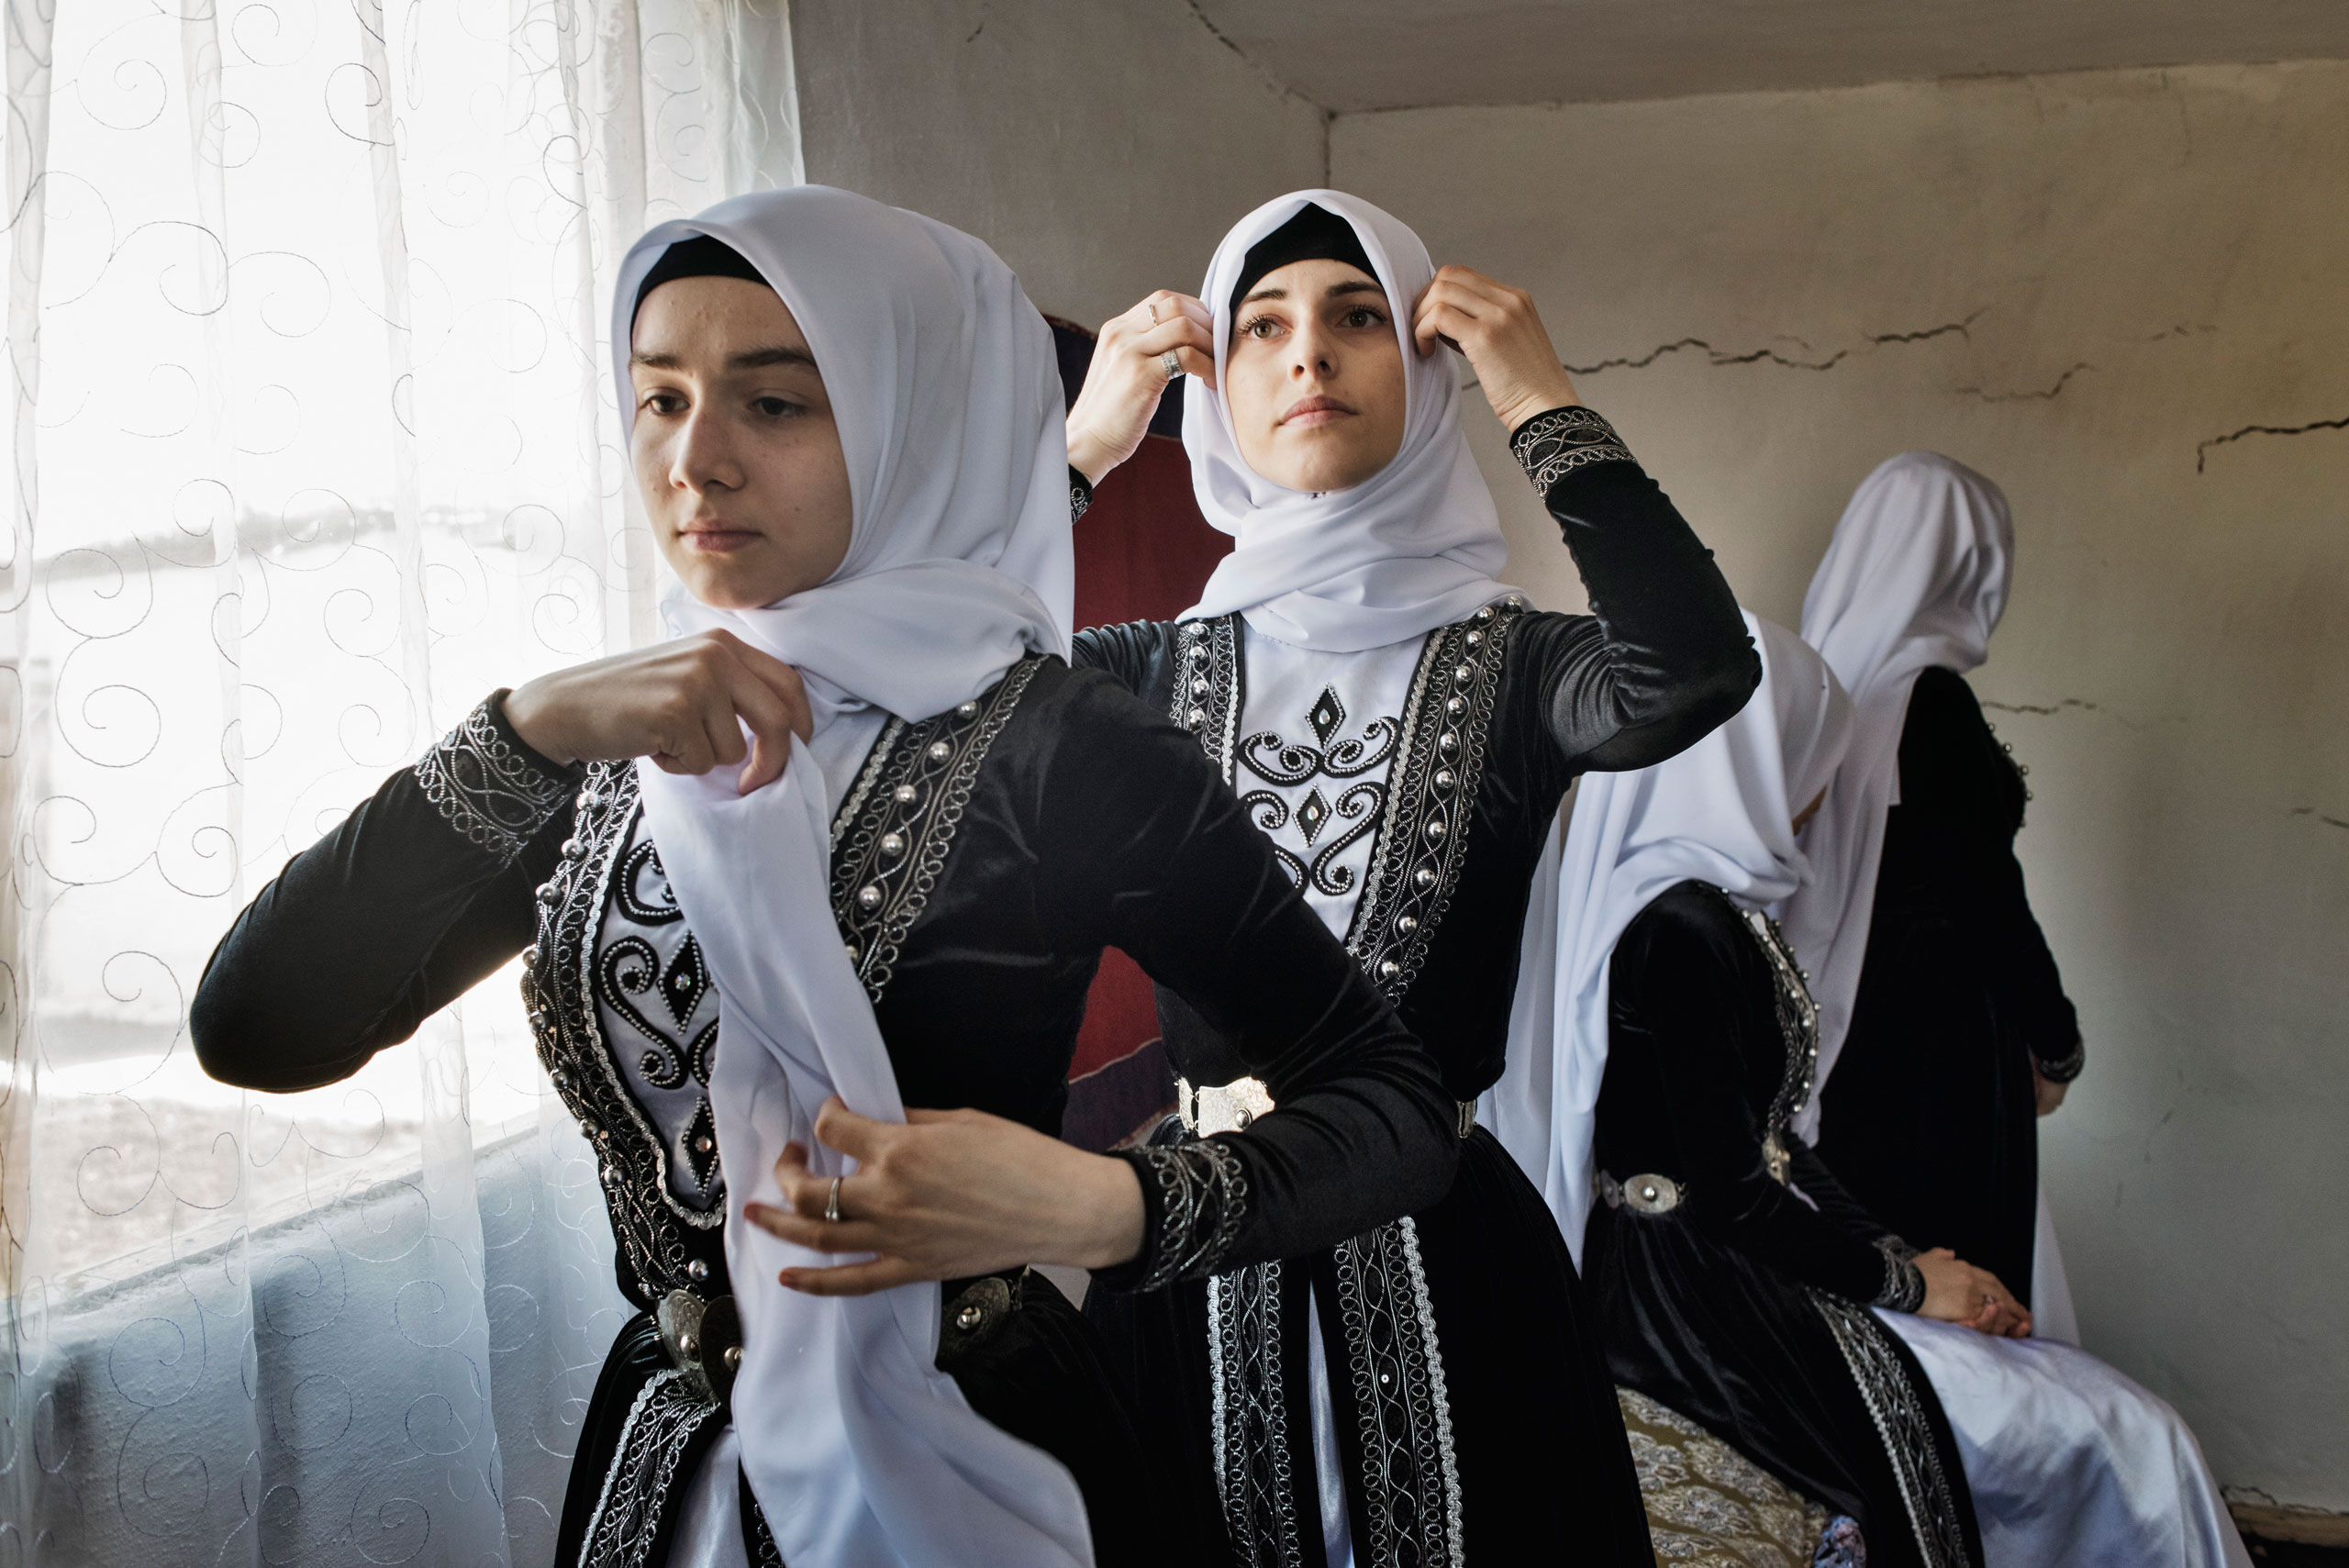 Young women in Chechnya await the arrival of Chechen leader Ramzan Kadyrov at a folk festival near the town of Shali, Chechnya, April 2015.